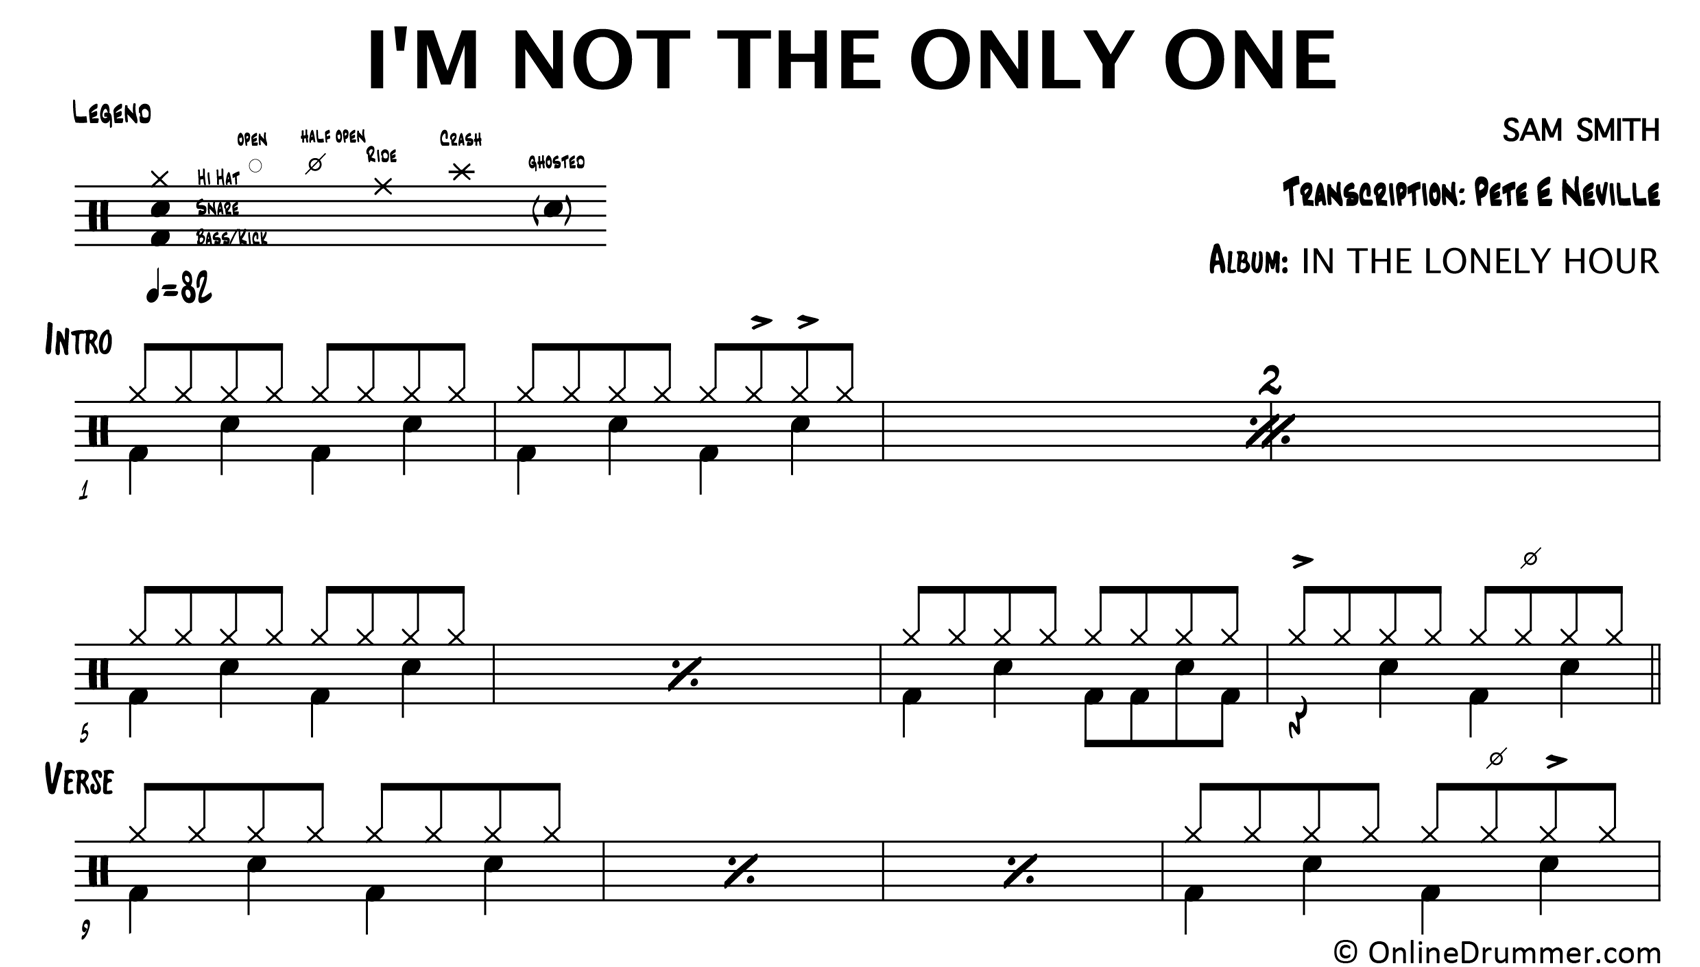 I'm Not The Only One - Sam Smith - Drum Sheet Music